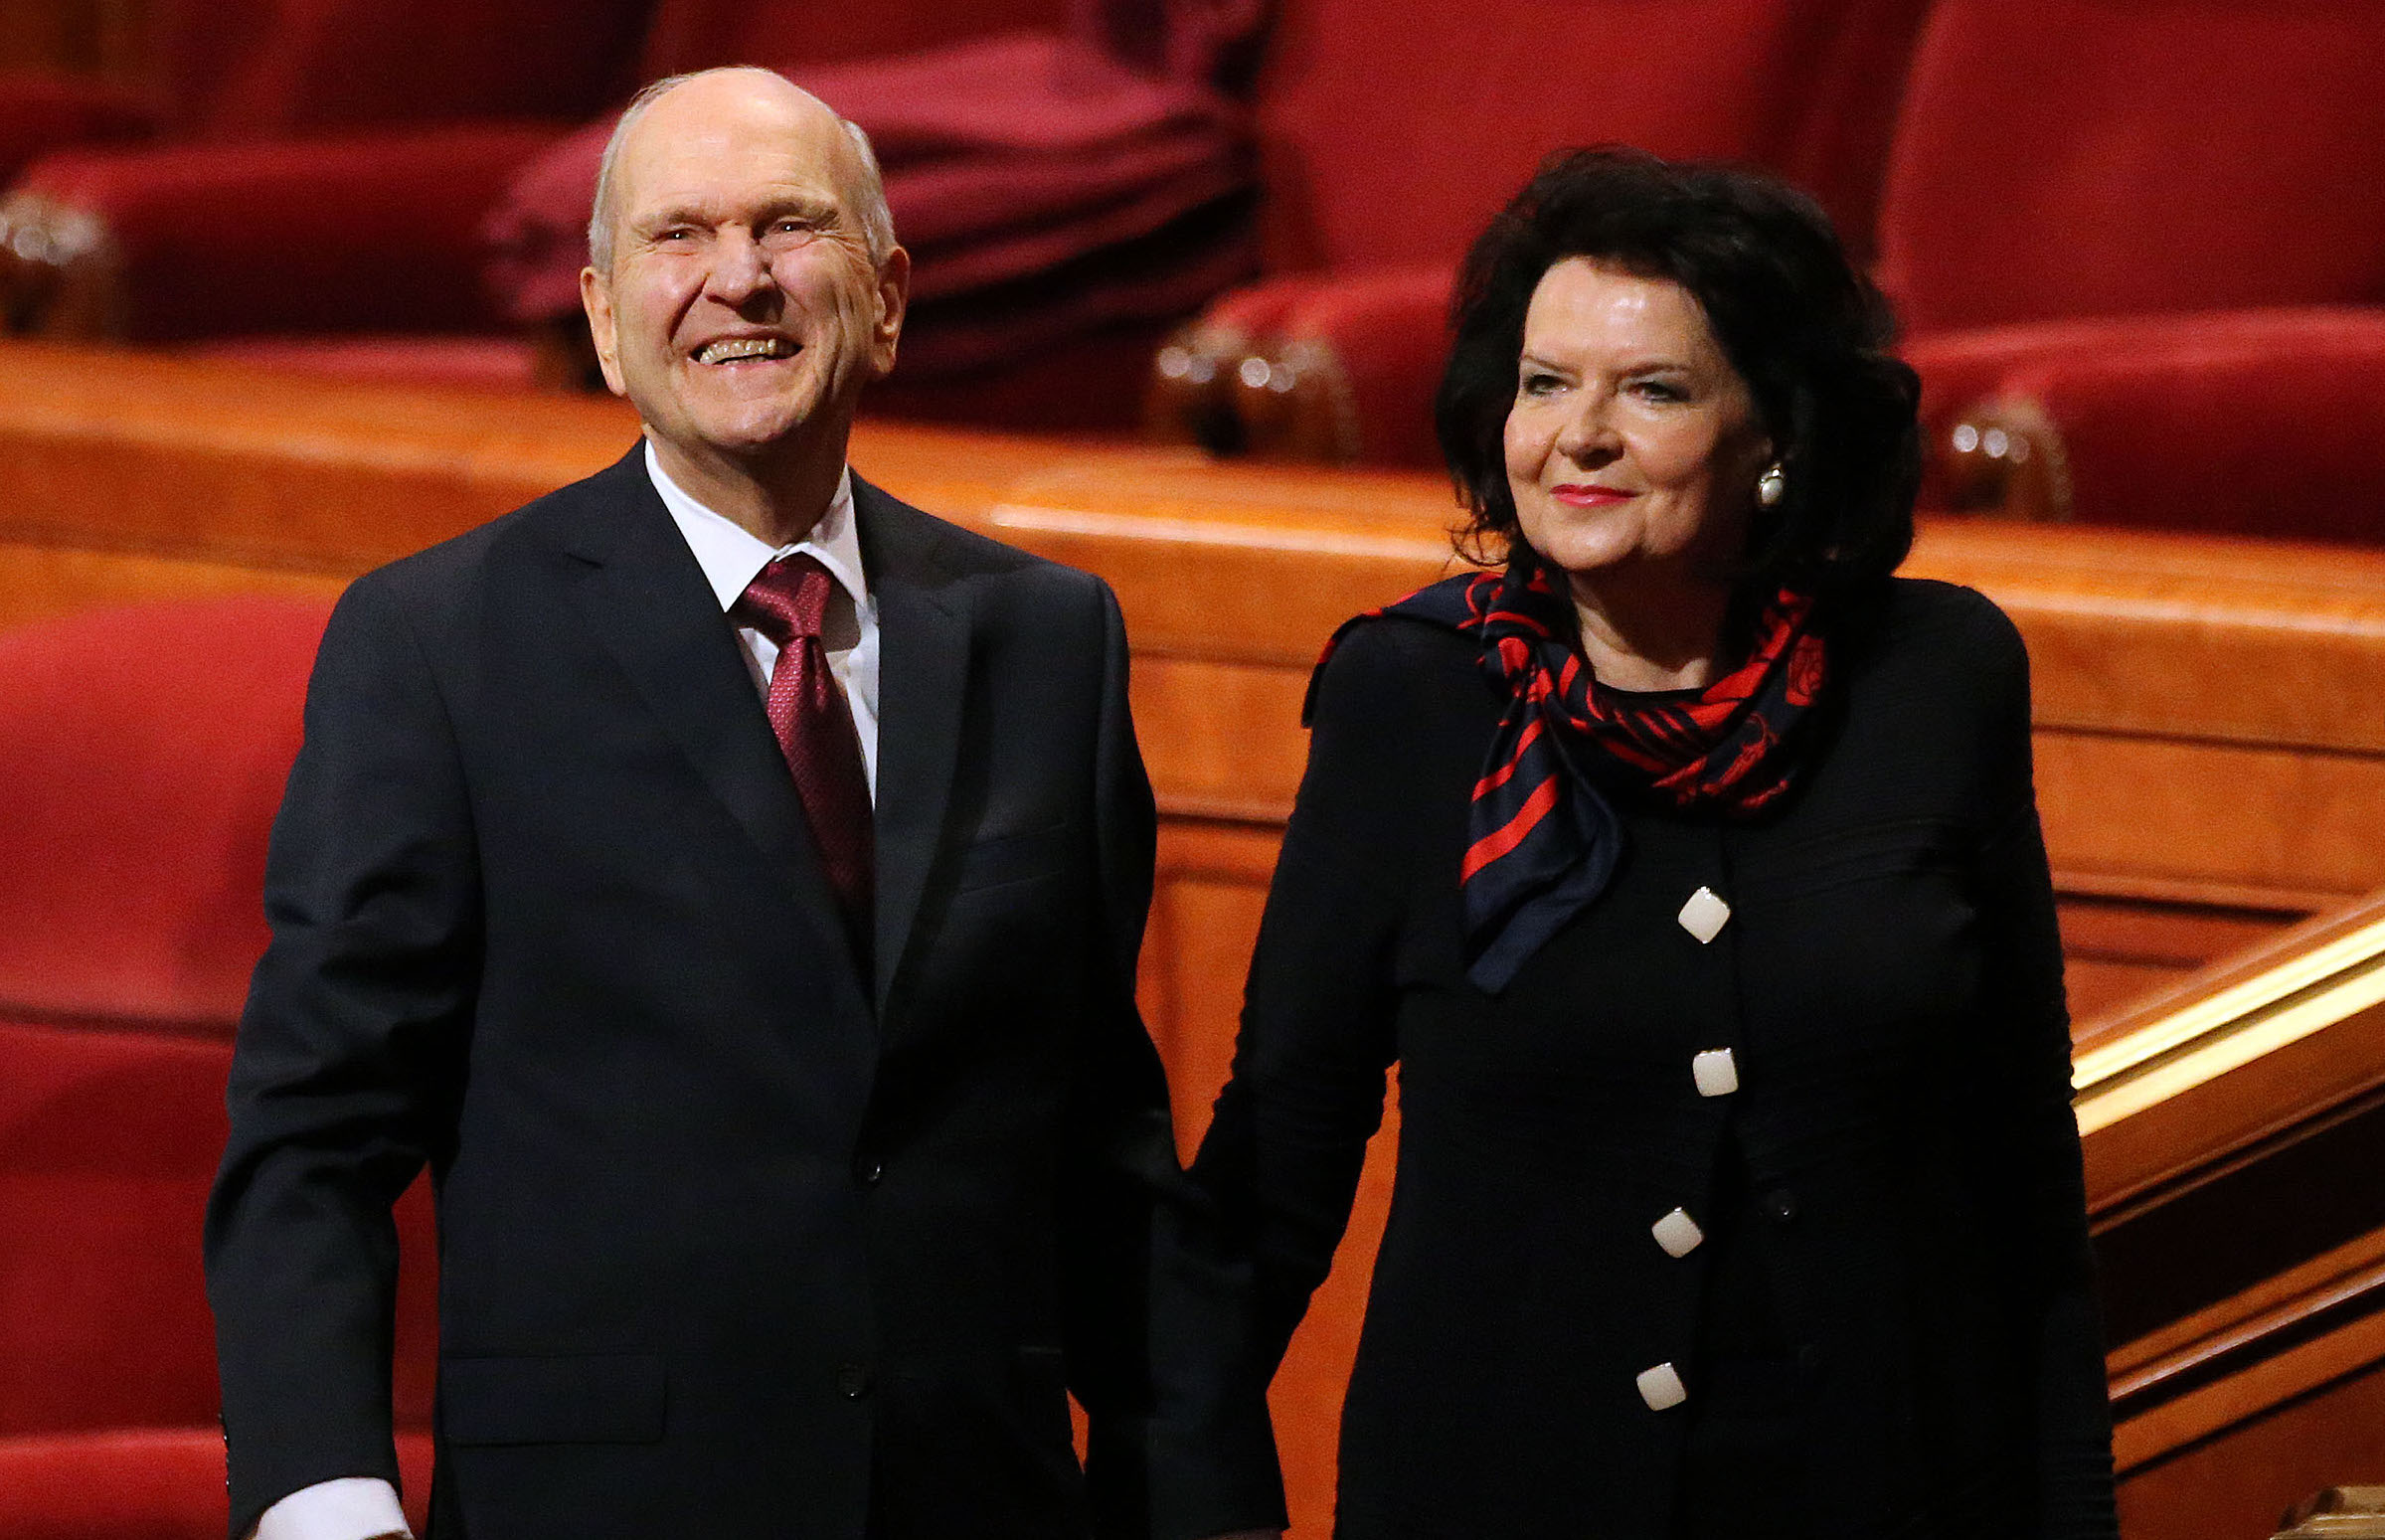 President Russell M. Nelson and his wife, Sister Wendy Nelson, leave the morning session of the 188th Annual General Conference of The Church of Jesus Christ of Latter-day Saints at the Conference Center in Salt Lake City on Sunday, April 1, 2018.